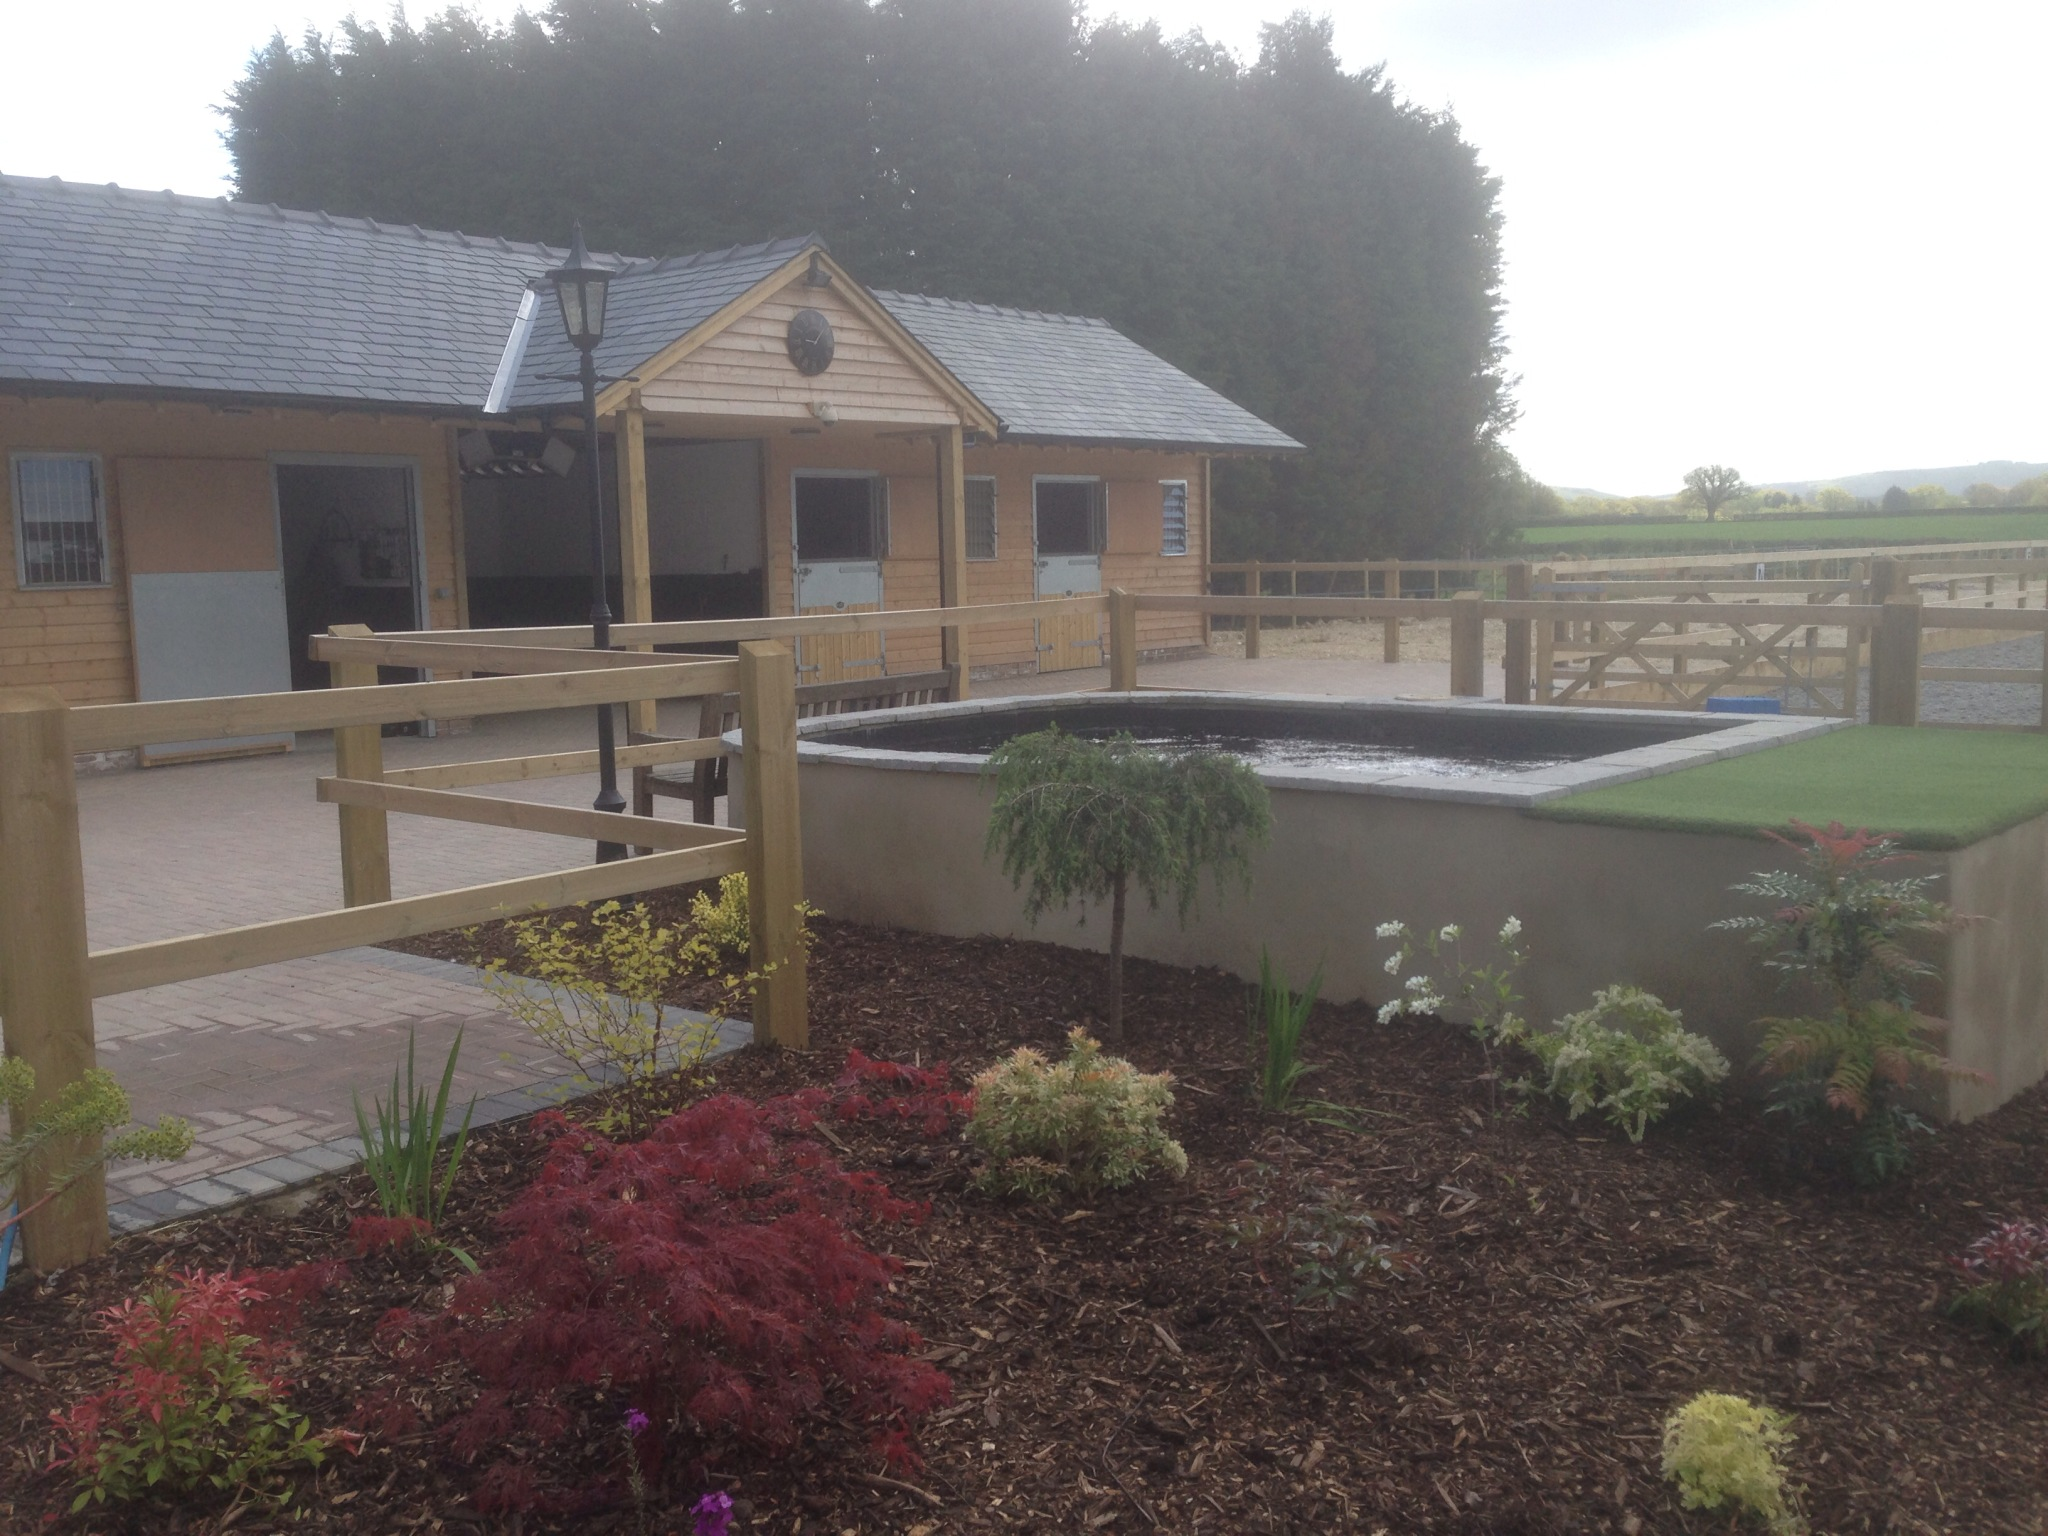 A newly built timber stables with block-paved yard in front and grass and gardens laid